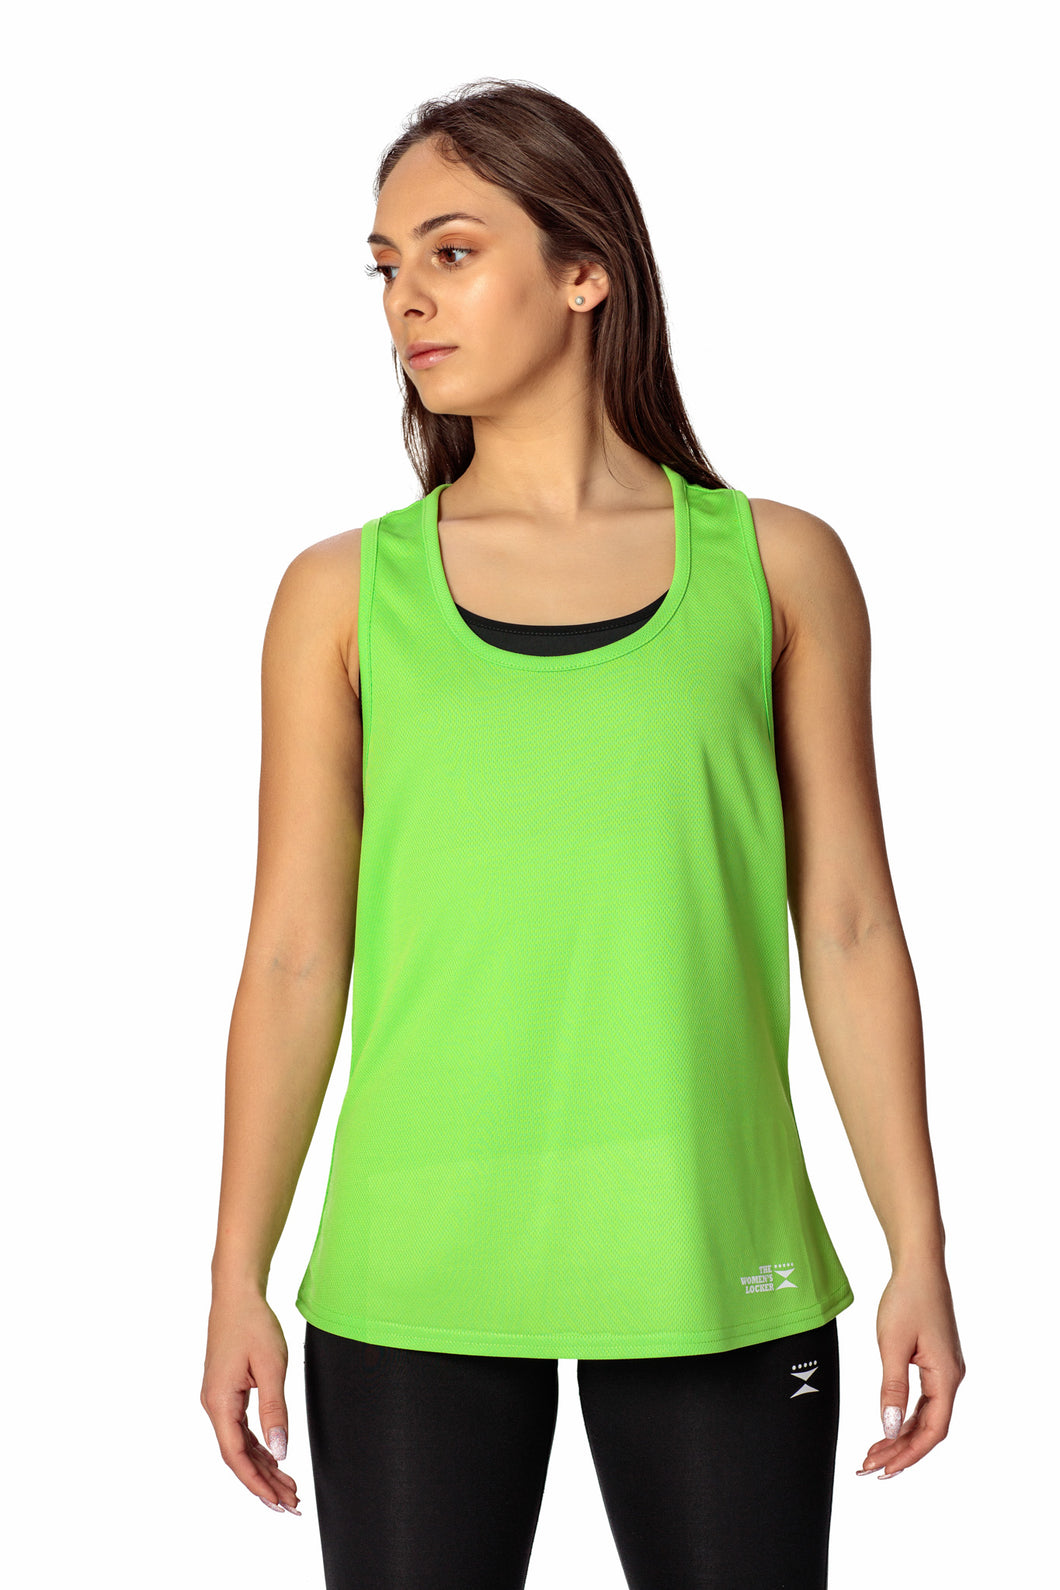 THE WOMEN'S LOCKER Essential Top